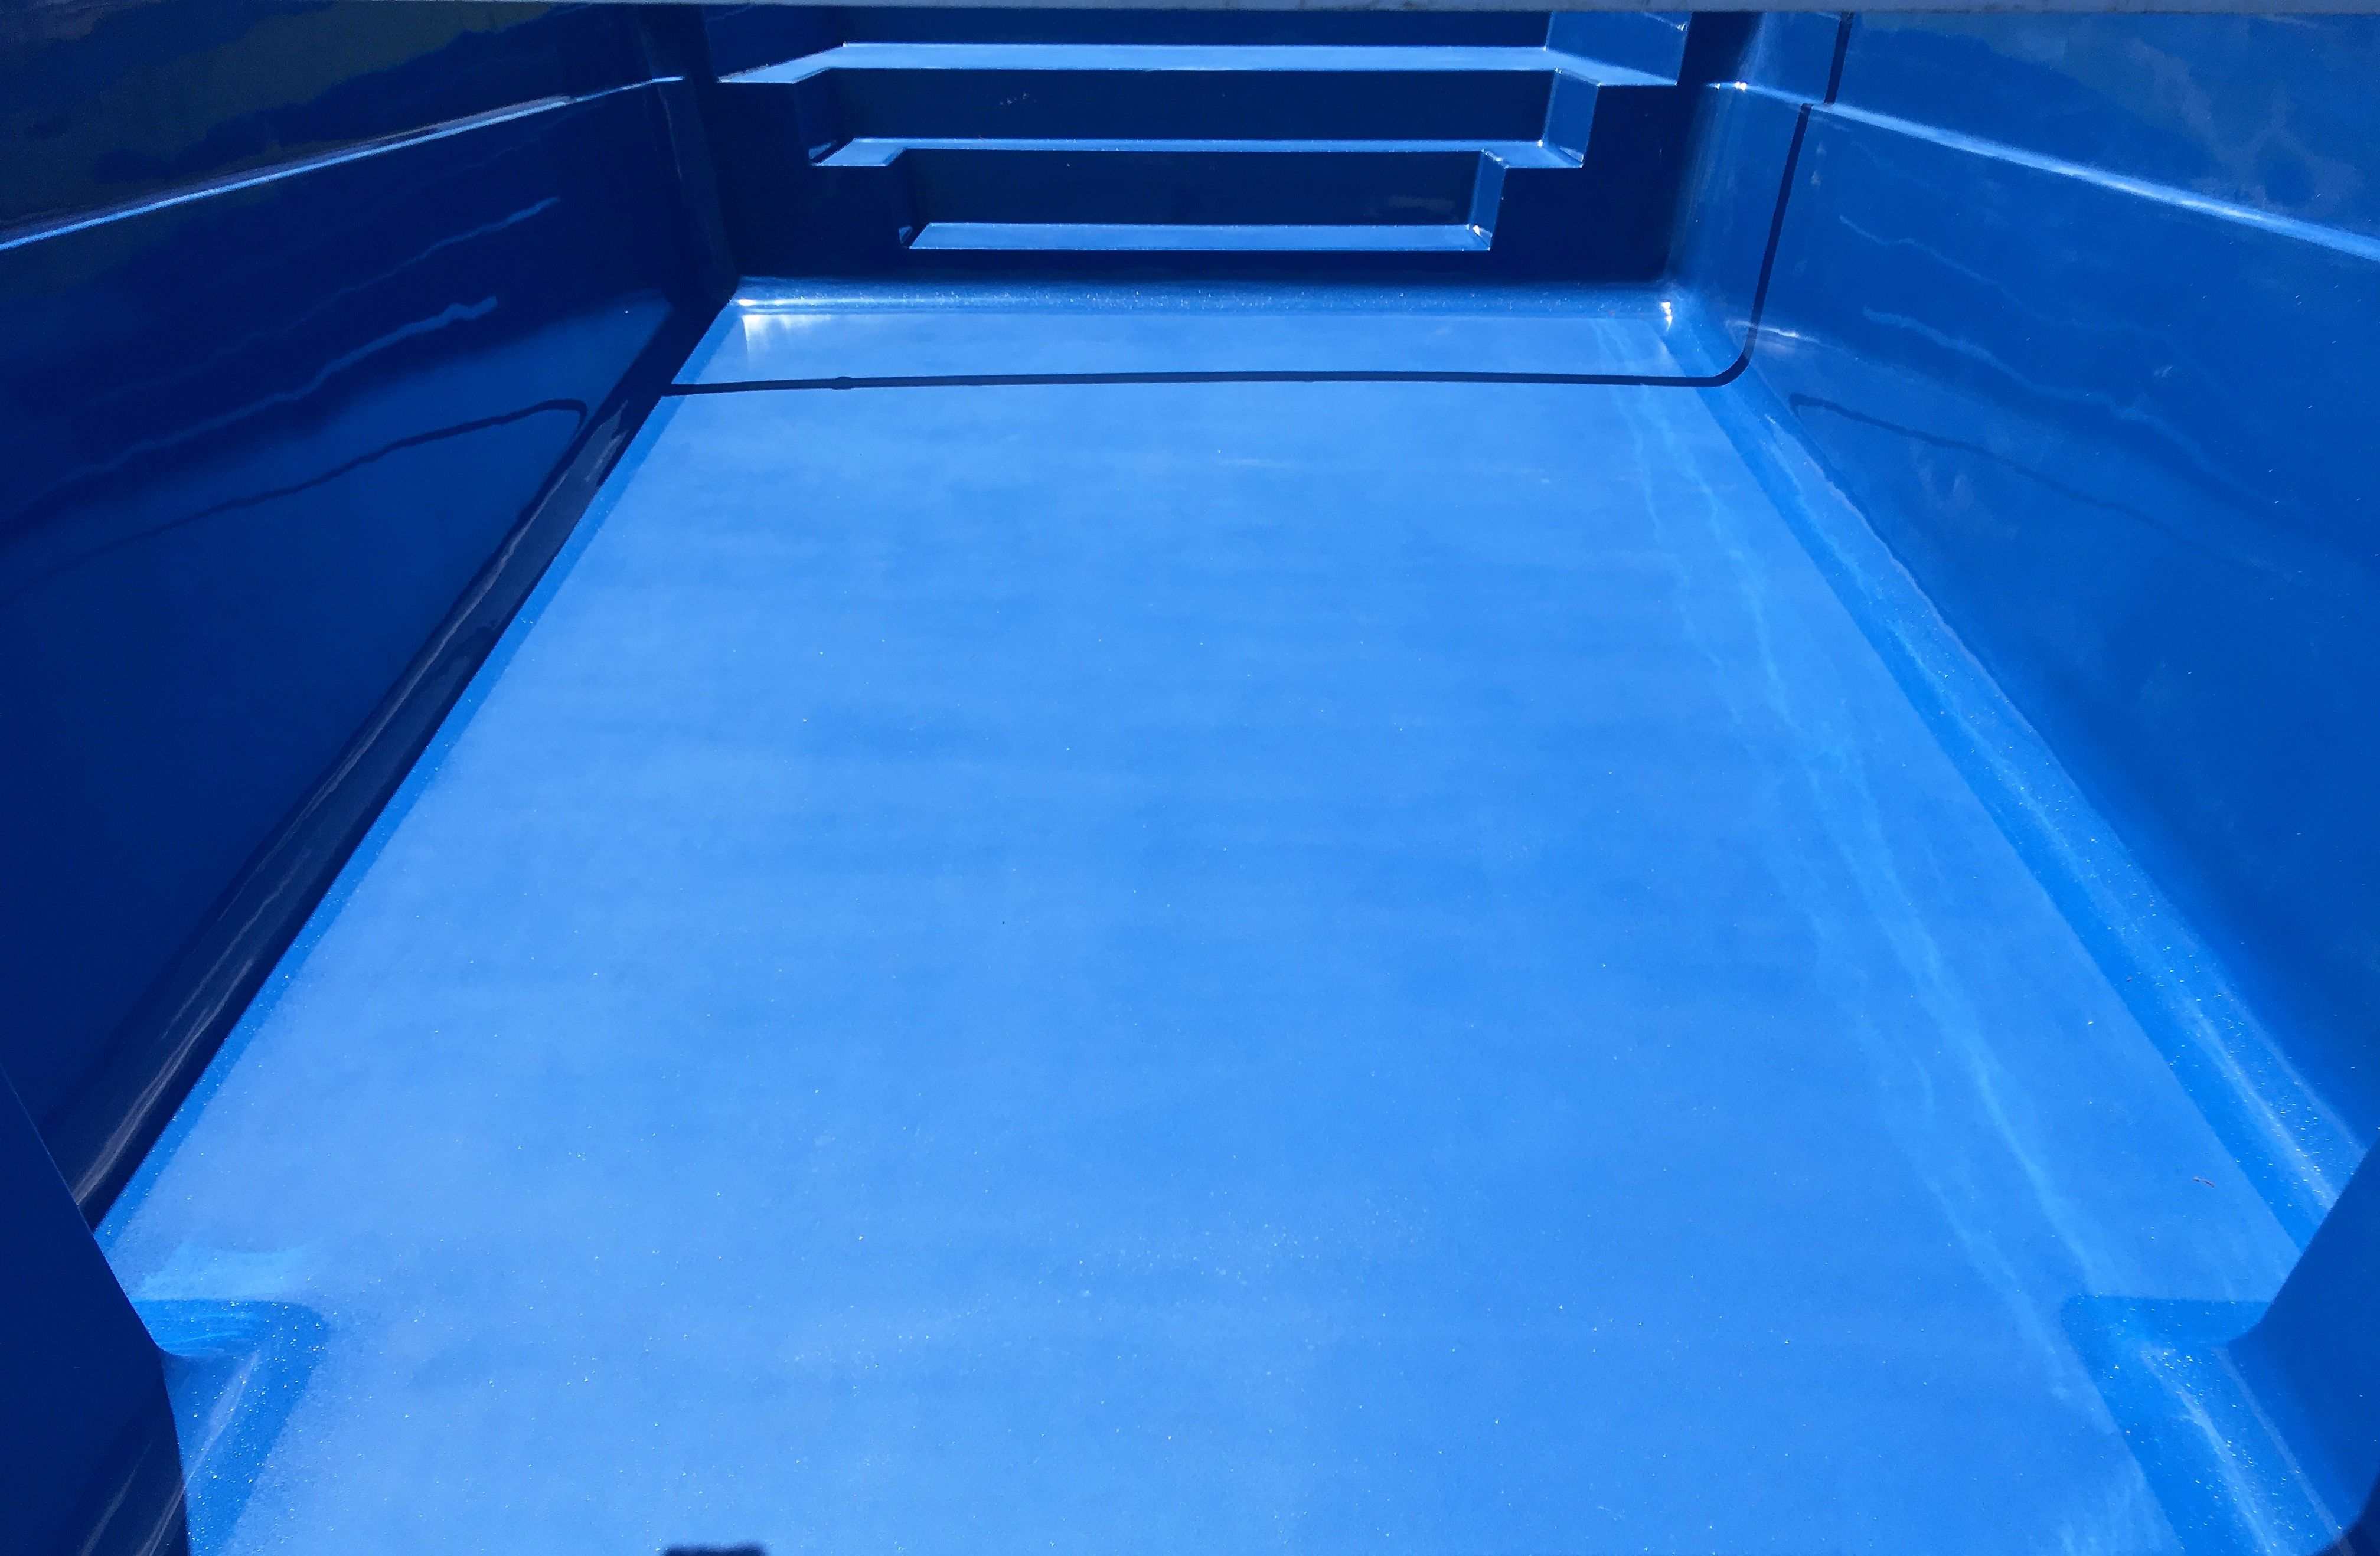 You 39 Re Inside An Imagine Pools Illusion 40 In Ocean Blue Where You Can See The Full Width